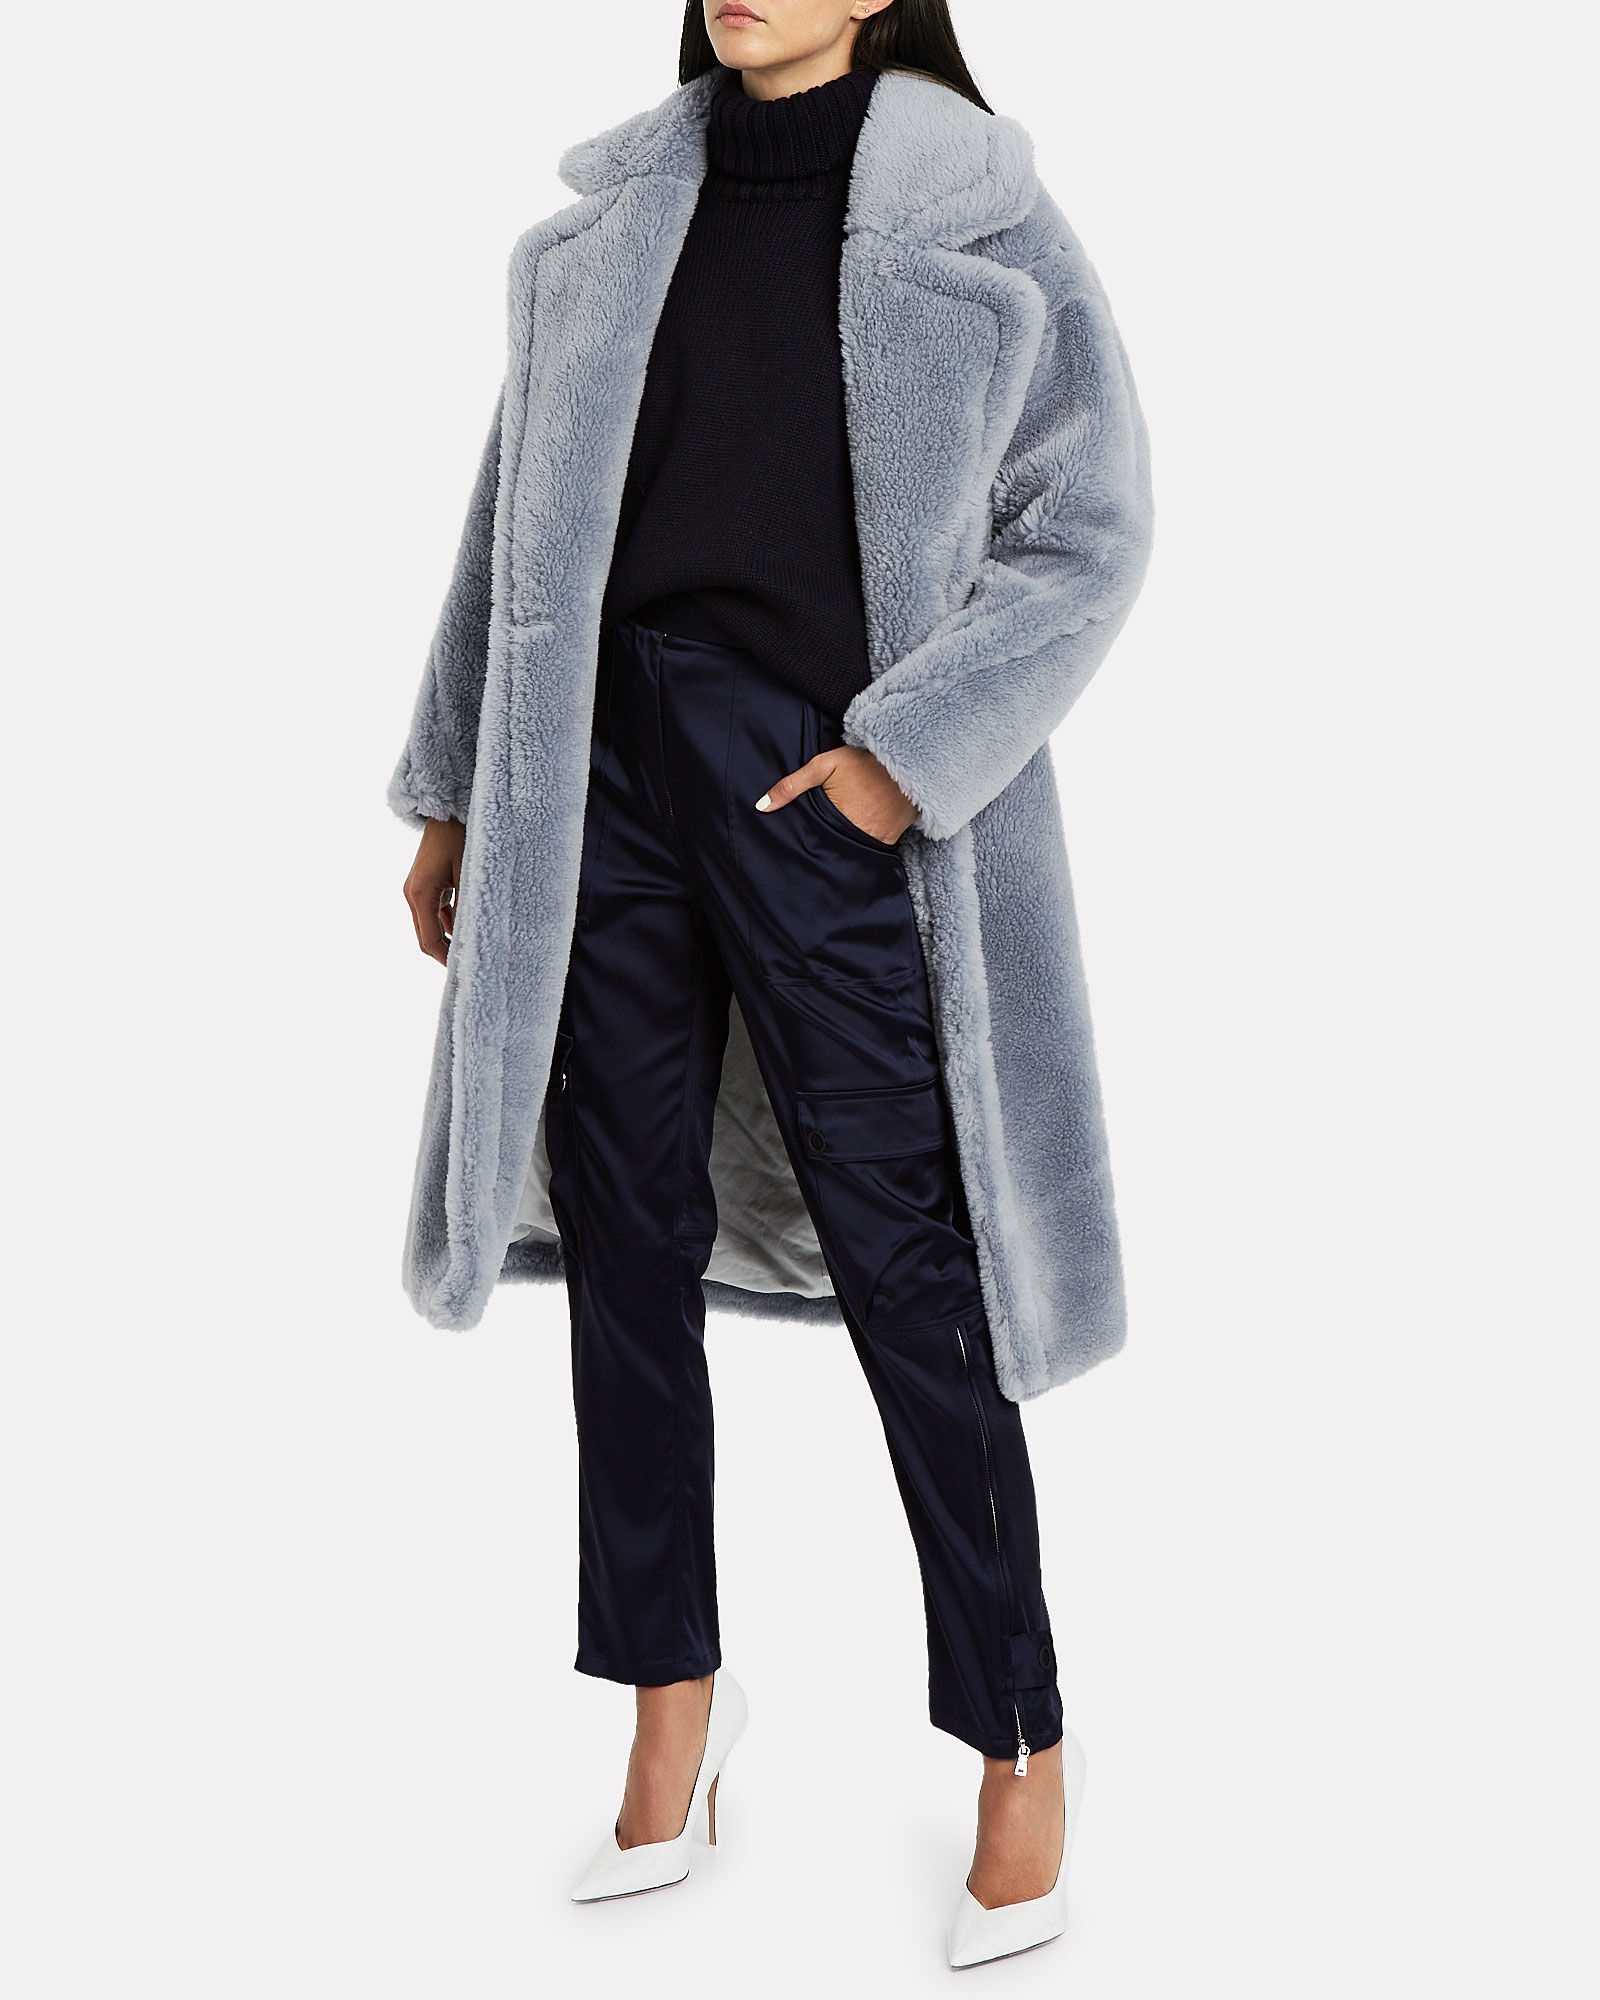 Wool Teddy Coat, BLUE-LT, hi-res